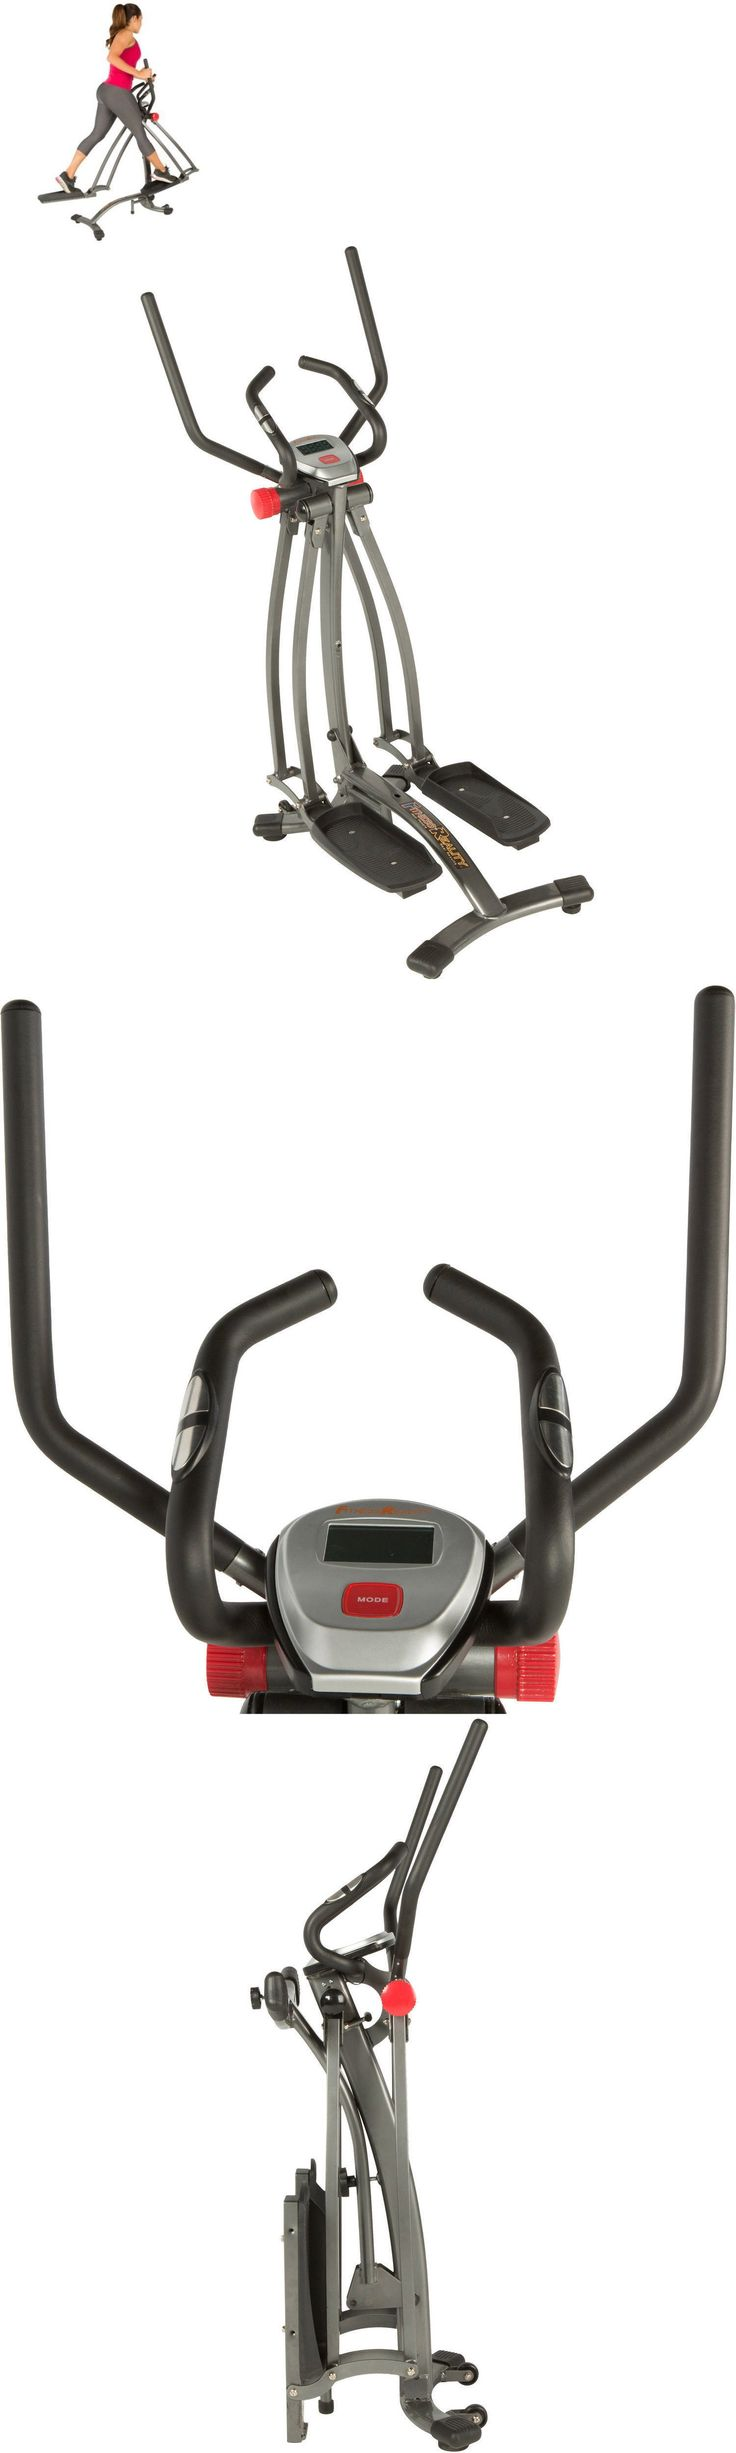 Ellipticals 72602: Elliptical Machine With Pulse Sensor Workout Exercise Home Gym Equipment Cardio -> BUY IT NOW ONLY: $189.0 on eBay!